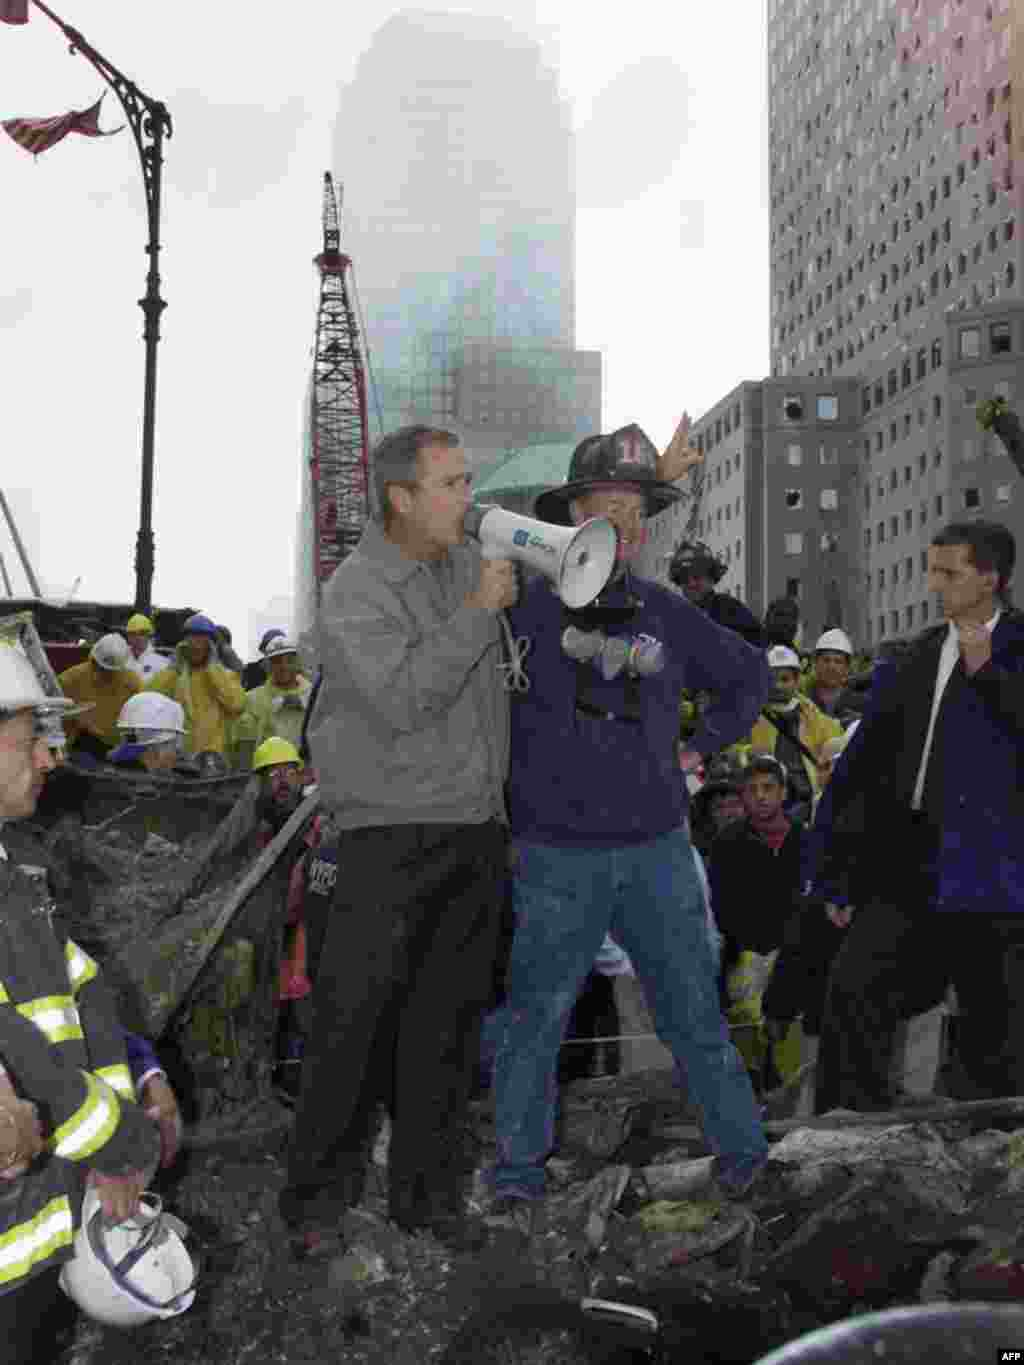 The day after - U.S. President George W. Bush (left) speaks through a megaphone beside retired firefighter Bob Beckwith, 69, to firemen and other workers on September 14, 2001, at the site of the destroyed World Trade Center in New York.